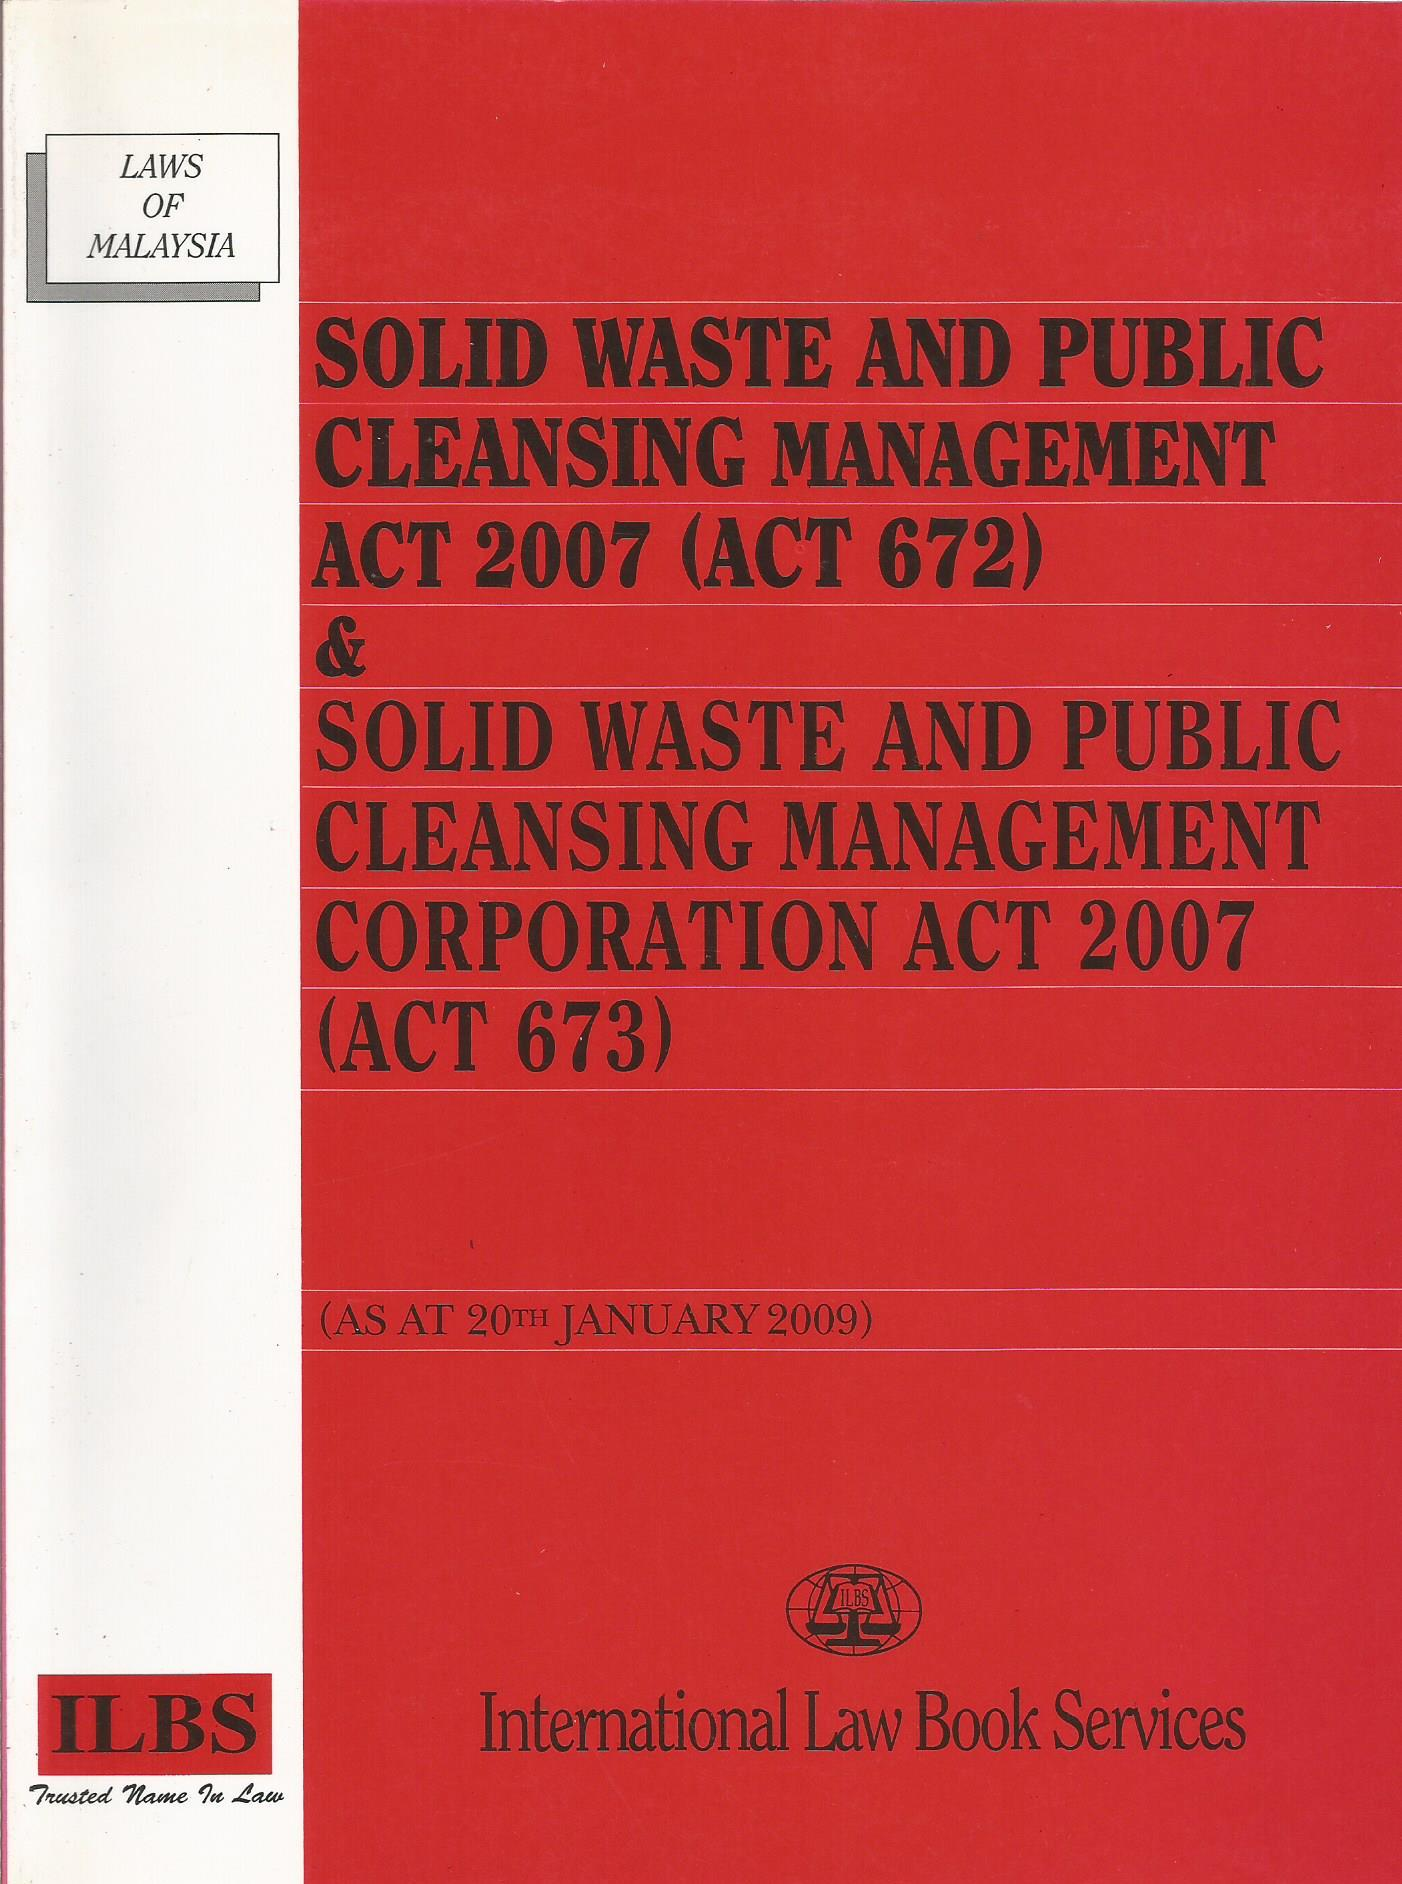 solid waste rm17.50 0.20001.jpg